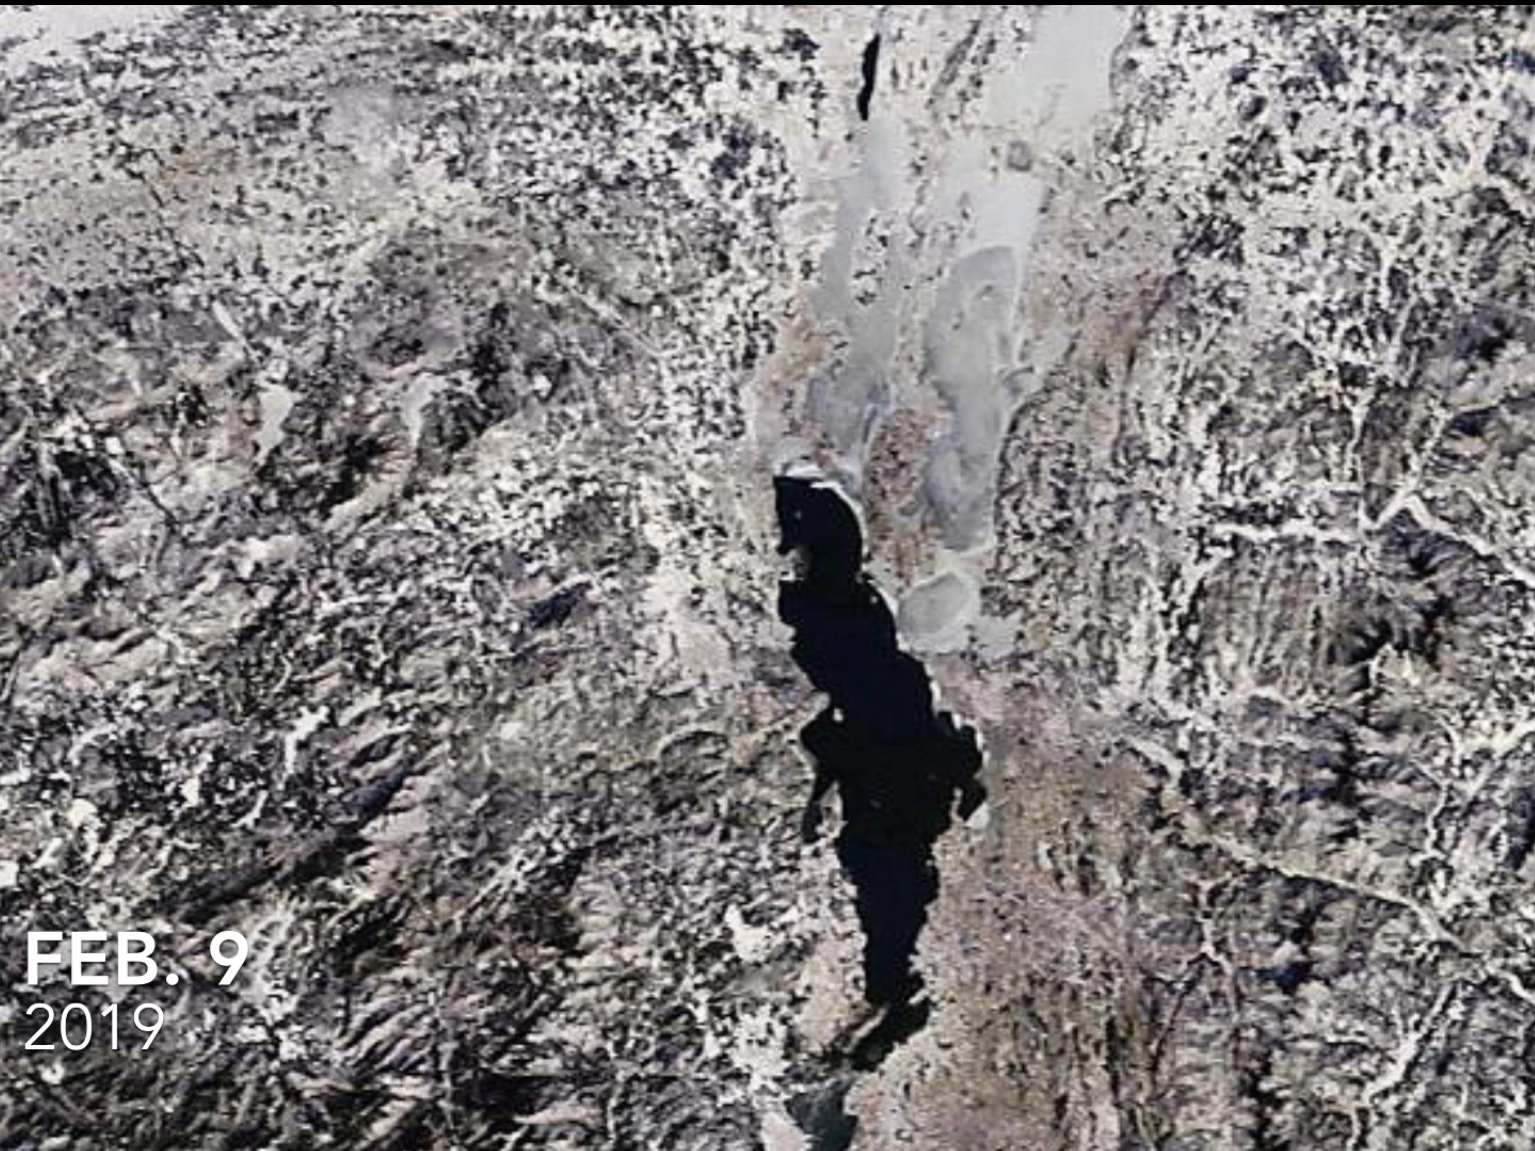 Lake Champlain, as photographed by a NASA satellite on Feb. 9, 2019.